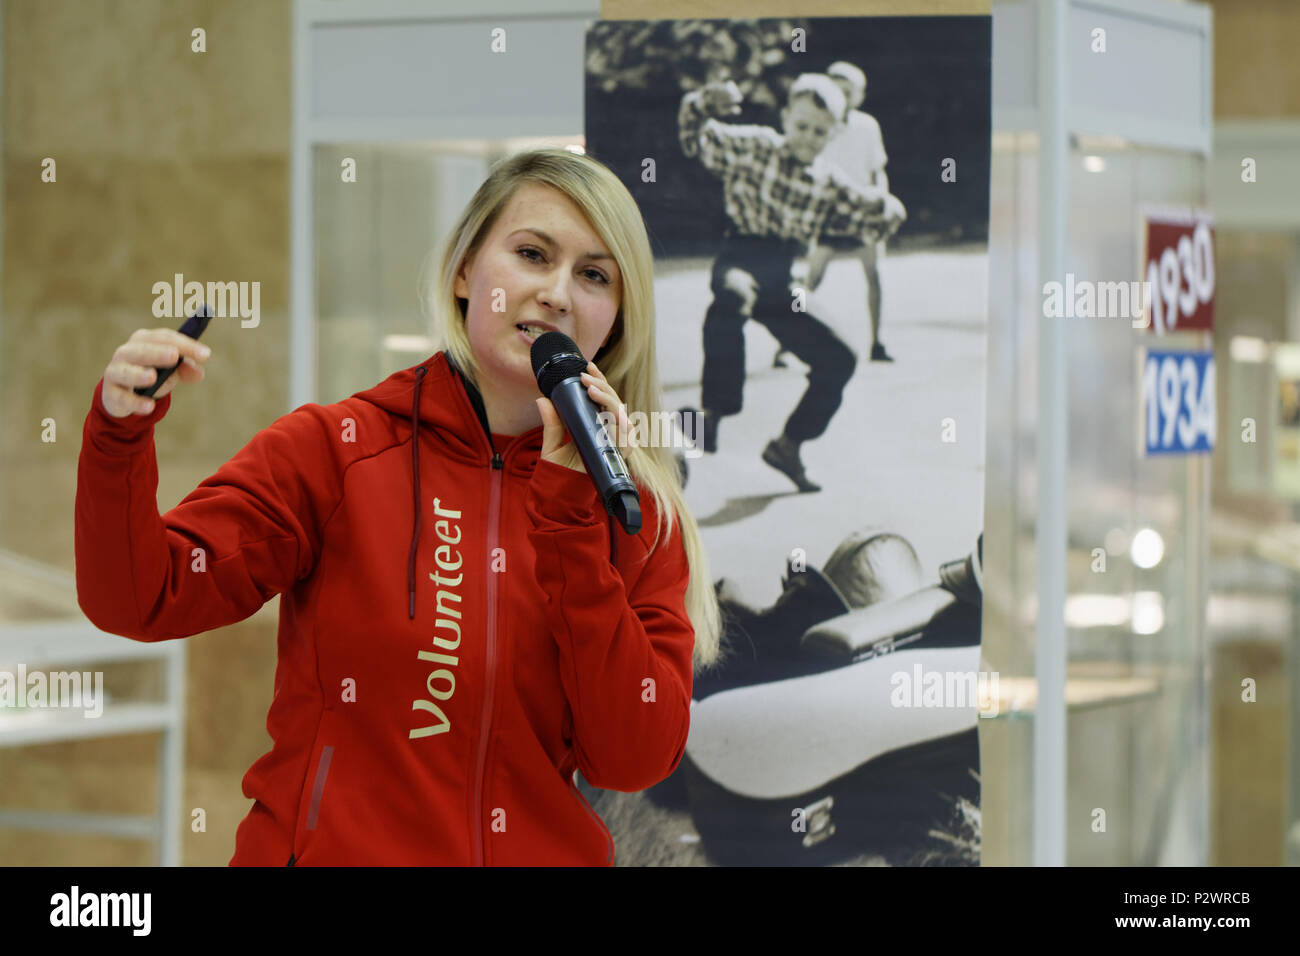 St. Petersburg, Russia - June 7, 2018: Volunteer of FIFA World Cup 2018 Elizaveta Usmanova on the opening of exhibition 'Goal!!! FIFA World Cups histo - Stock Image